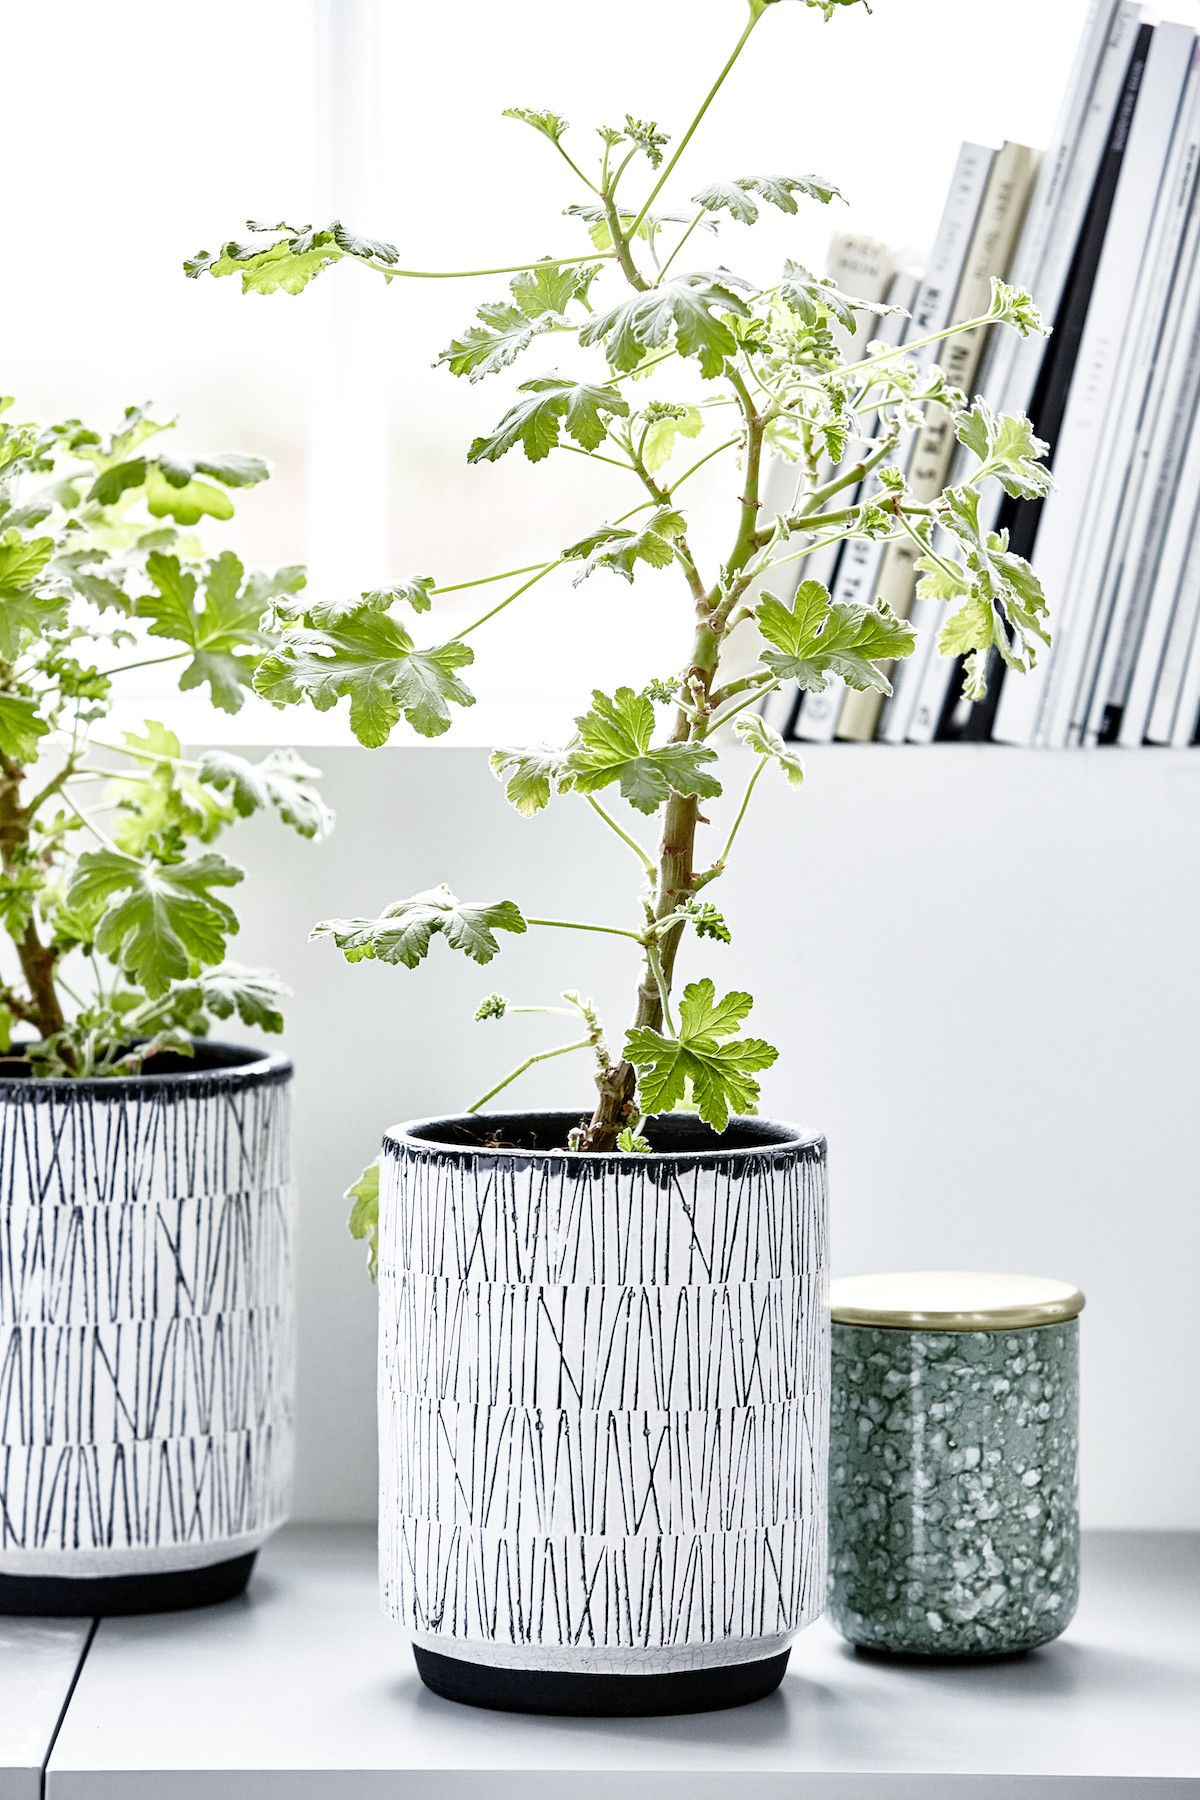 RETRO PLANT POT VASE by House Doctor | Lo and behold – LO AND BEHOLD ...